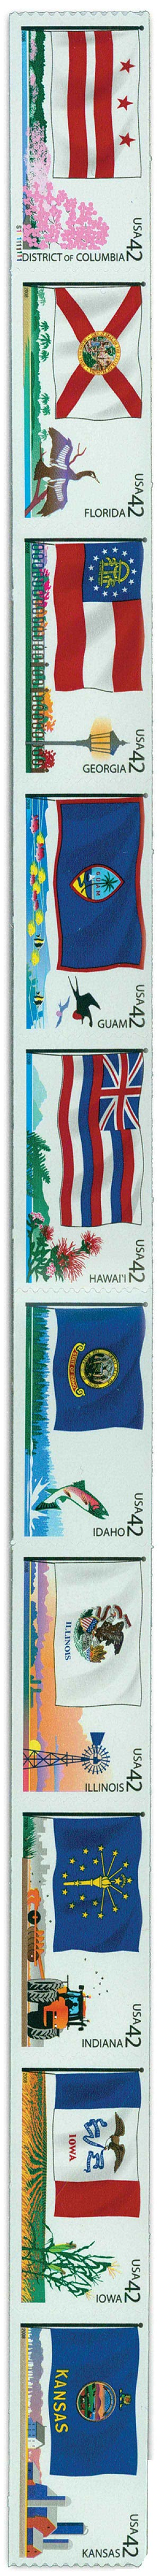 2008 42c Flags of Our Nation: 2nd Edition, strip of 10 stamps